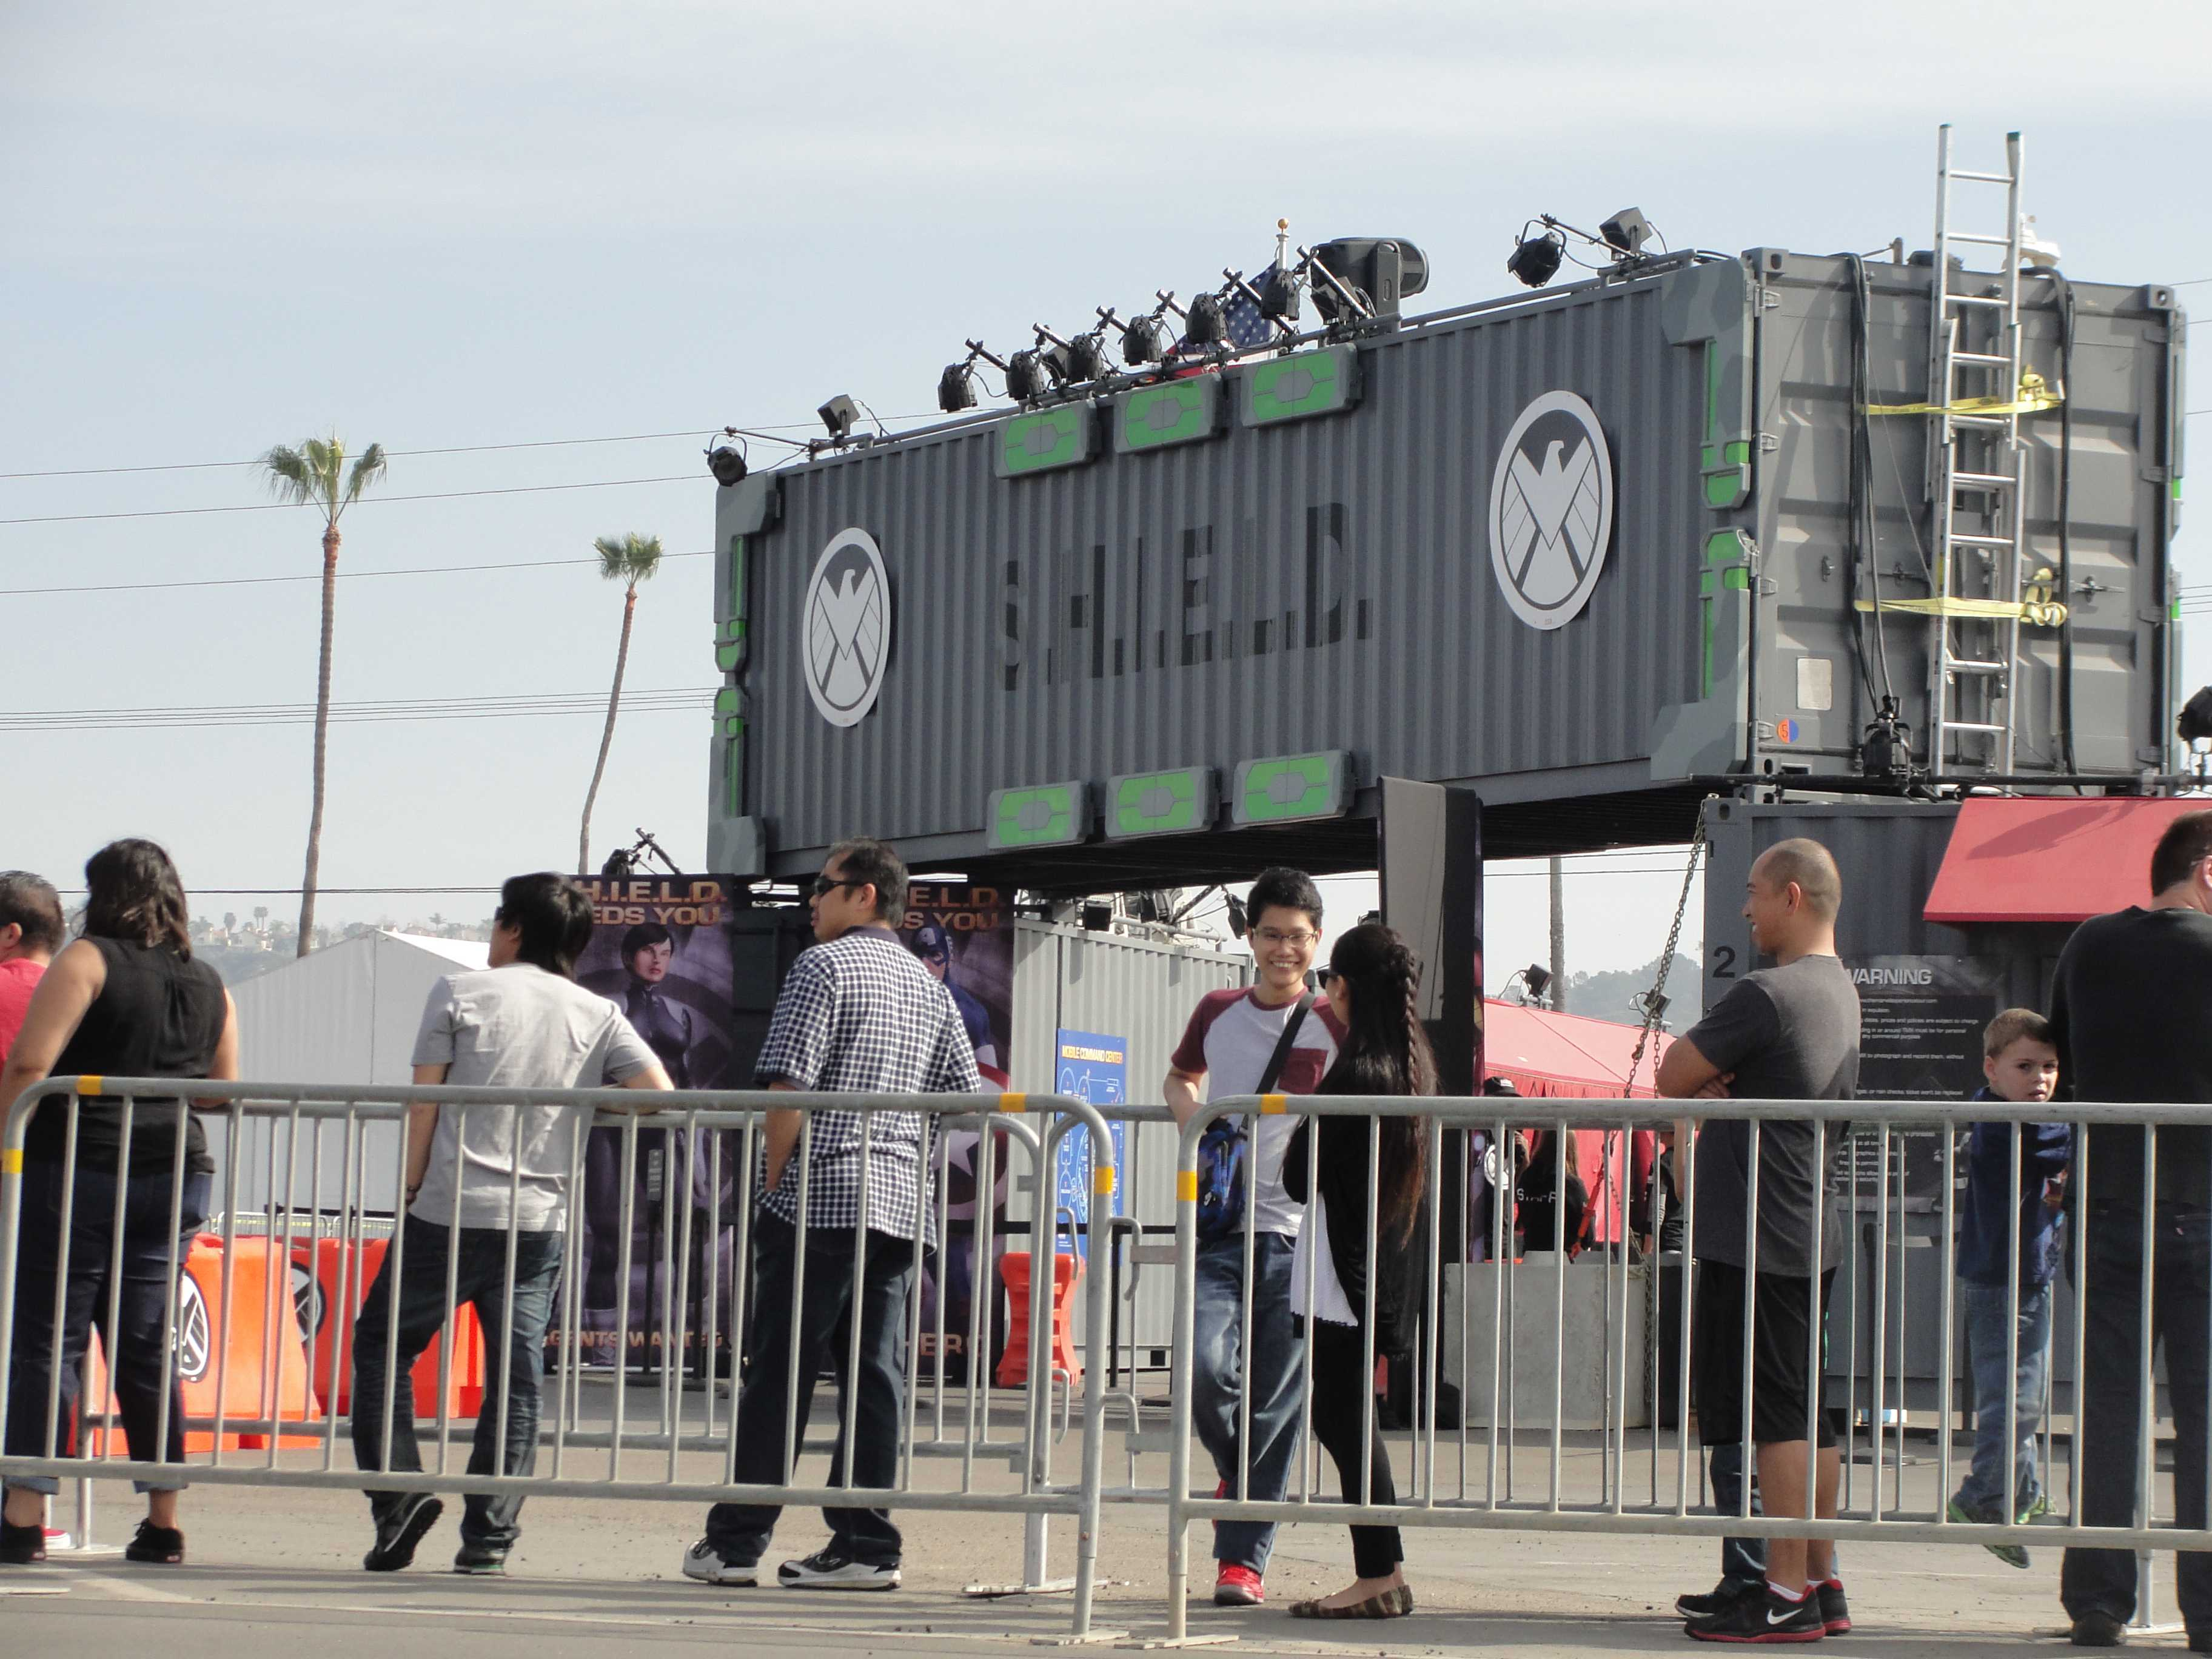 Marvel fans eagerly await their entrance to the Marvel Experience at the Del Mar Fairgrounds. Photo credit: Antonio Marquez